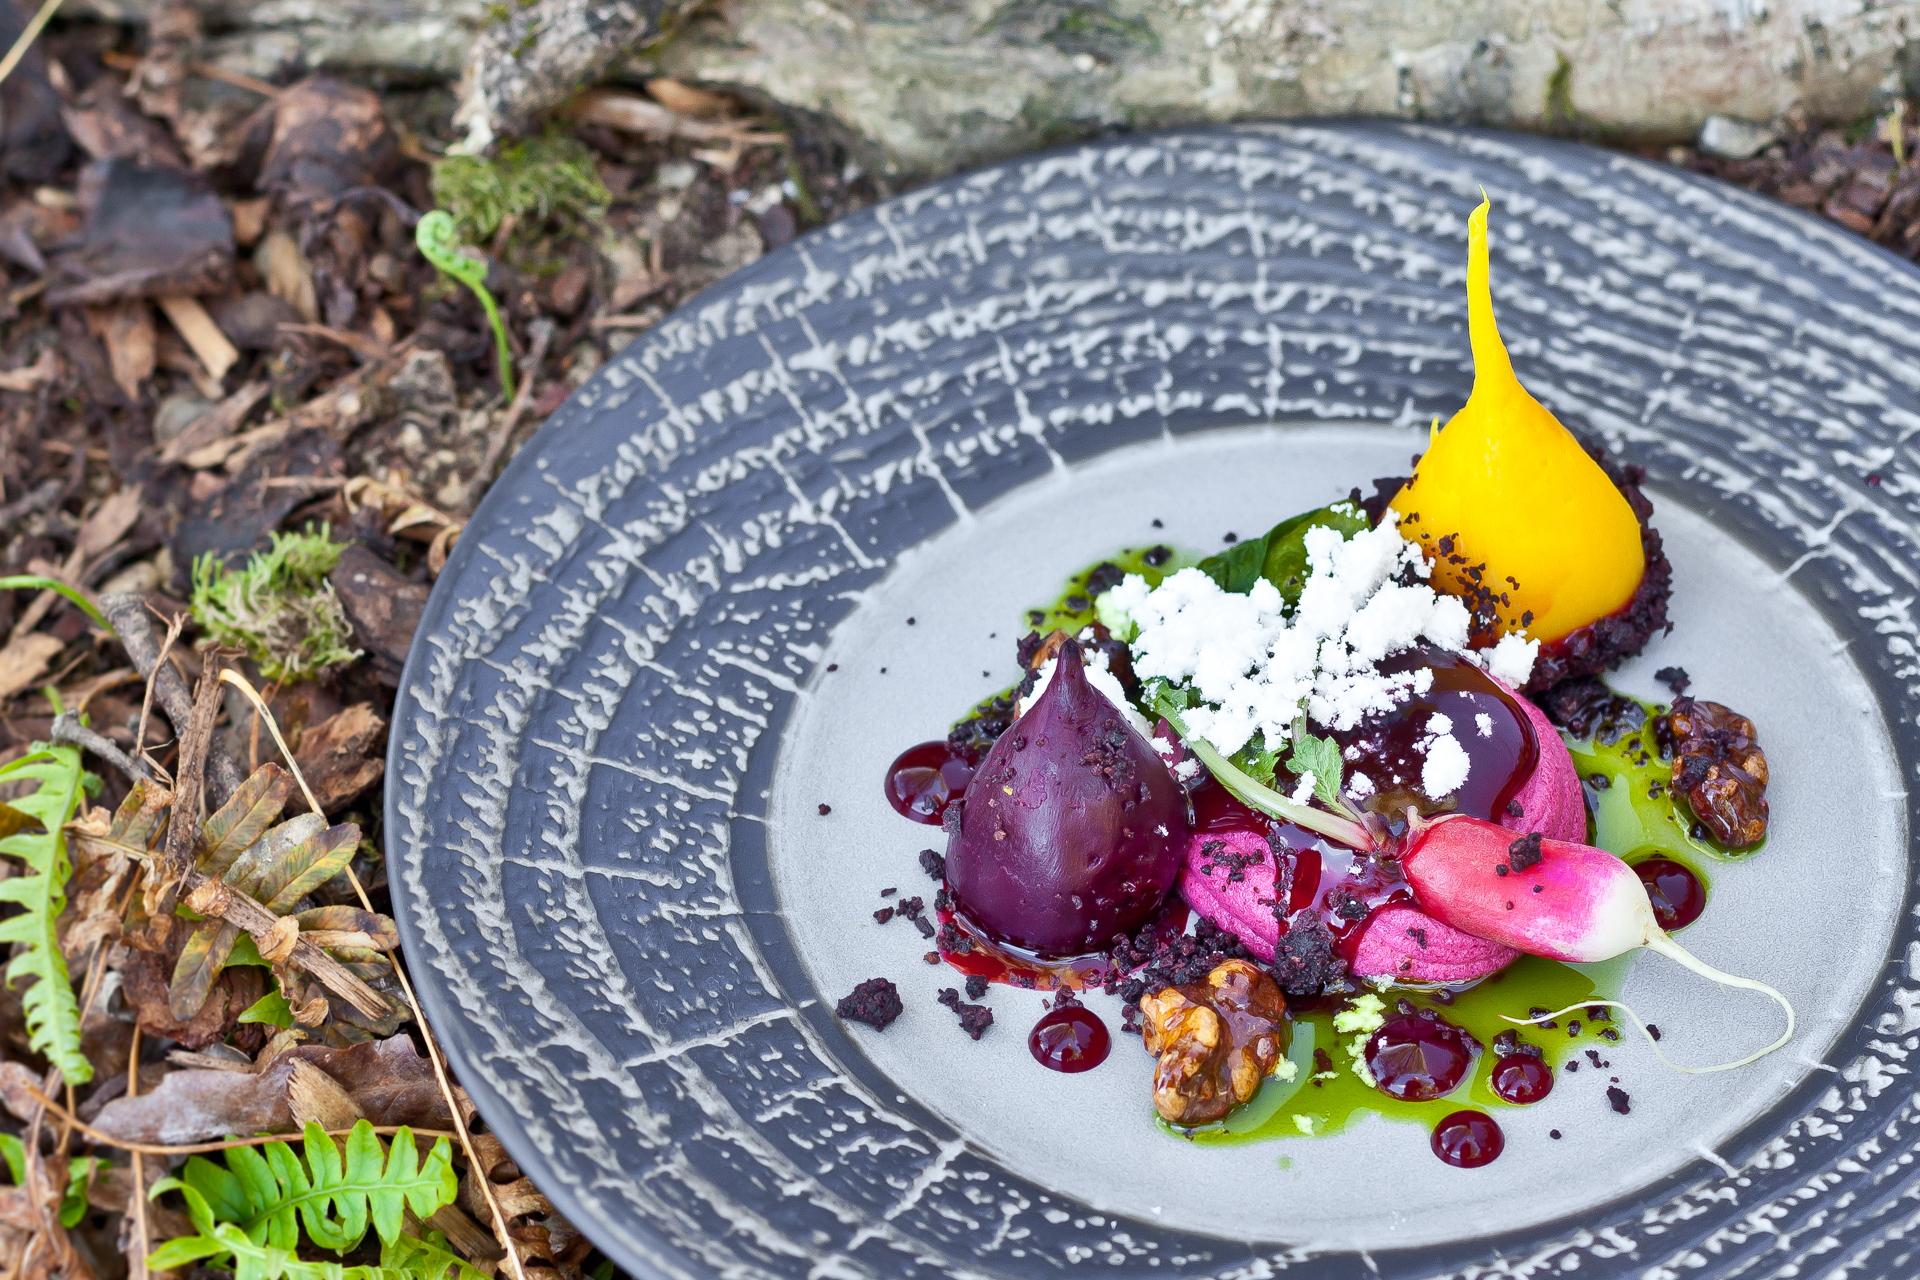 Food - Beetroot